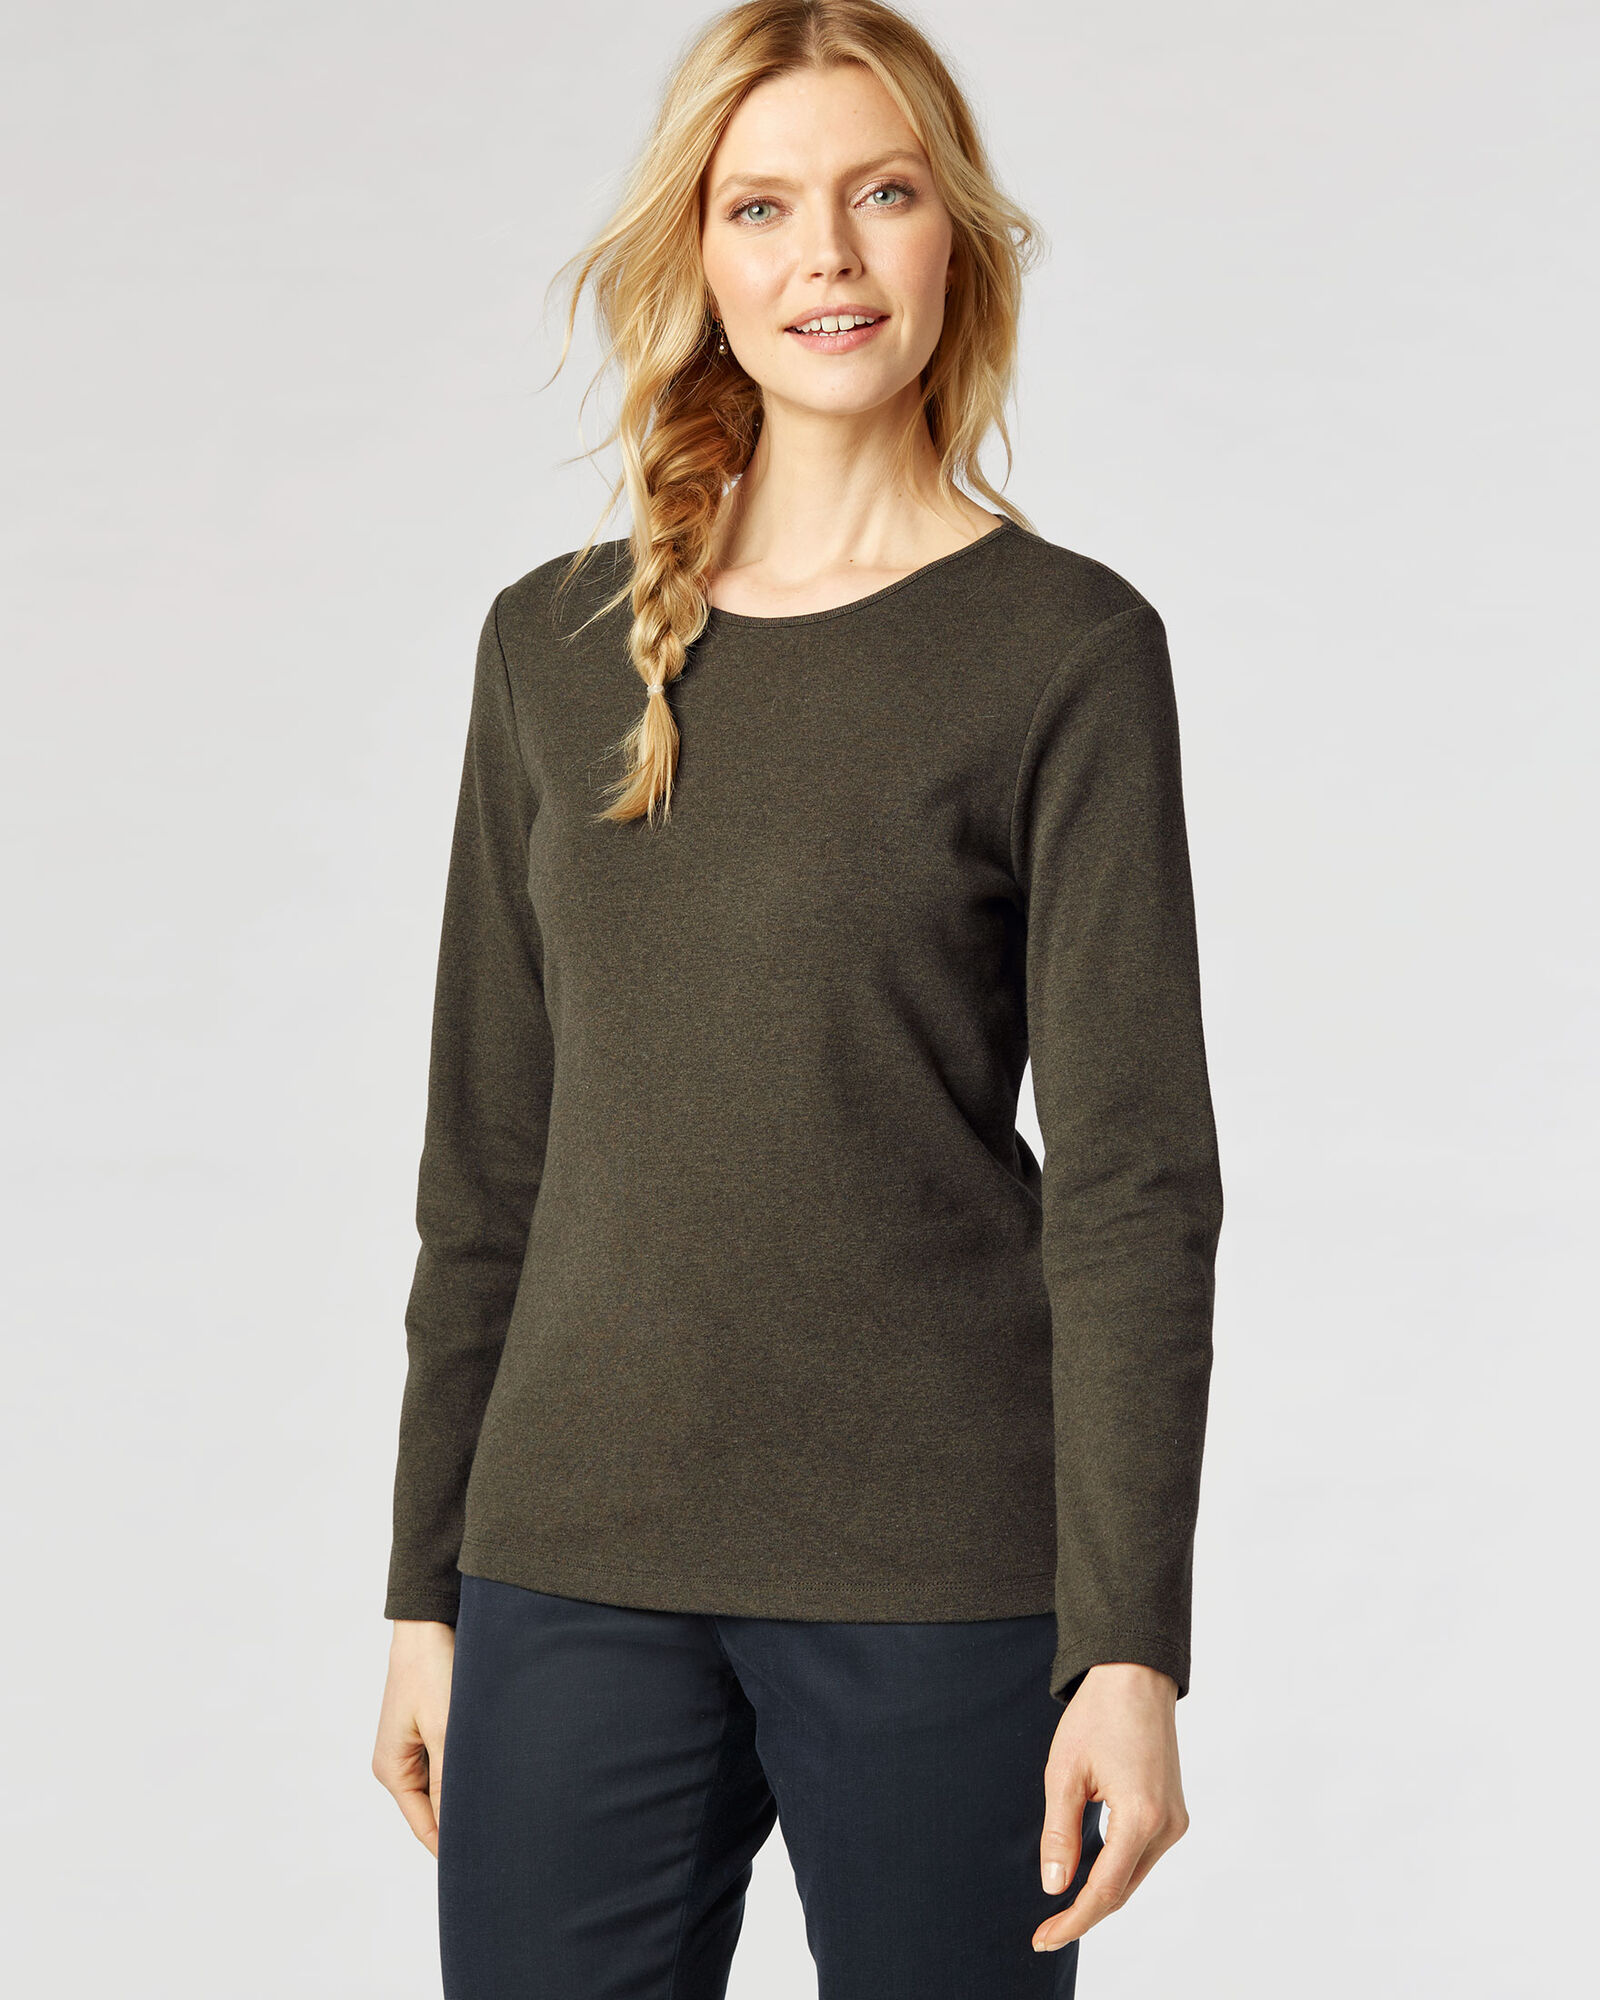 We stock wholesale long sleeve t-shirts from a variety of brands including Gildan, Hanes, Comfort Colors, Alo, Champion, and many more. All varieties including standard cotton, poly performance wicking, henleys, and even camouflage.